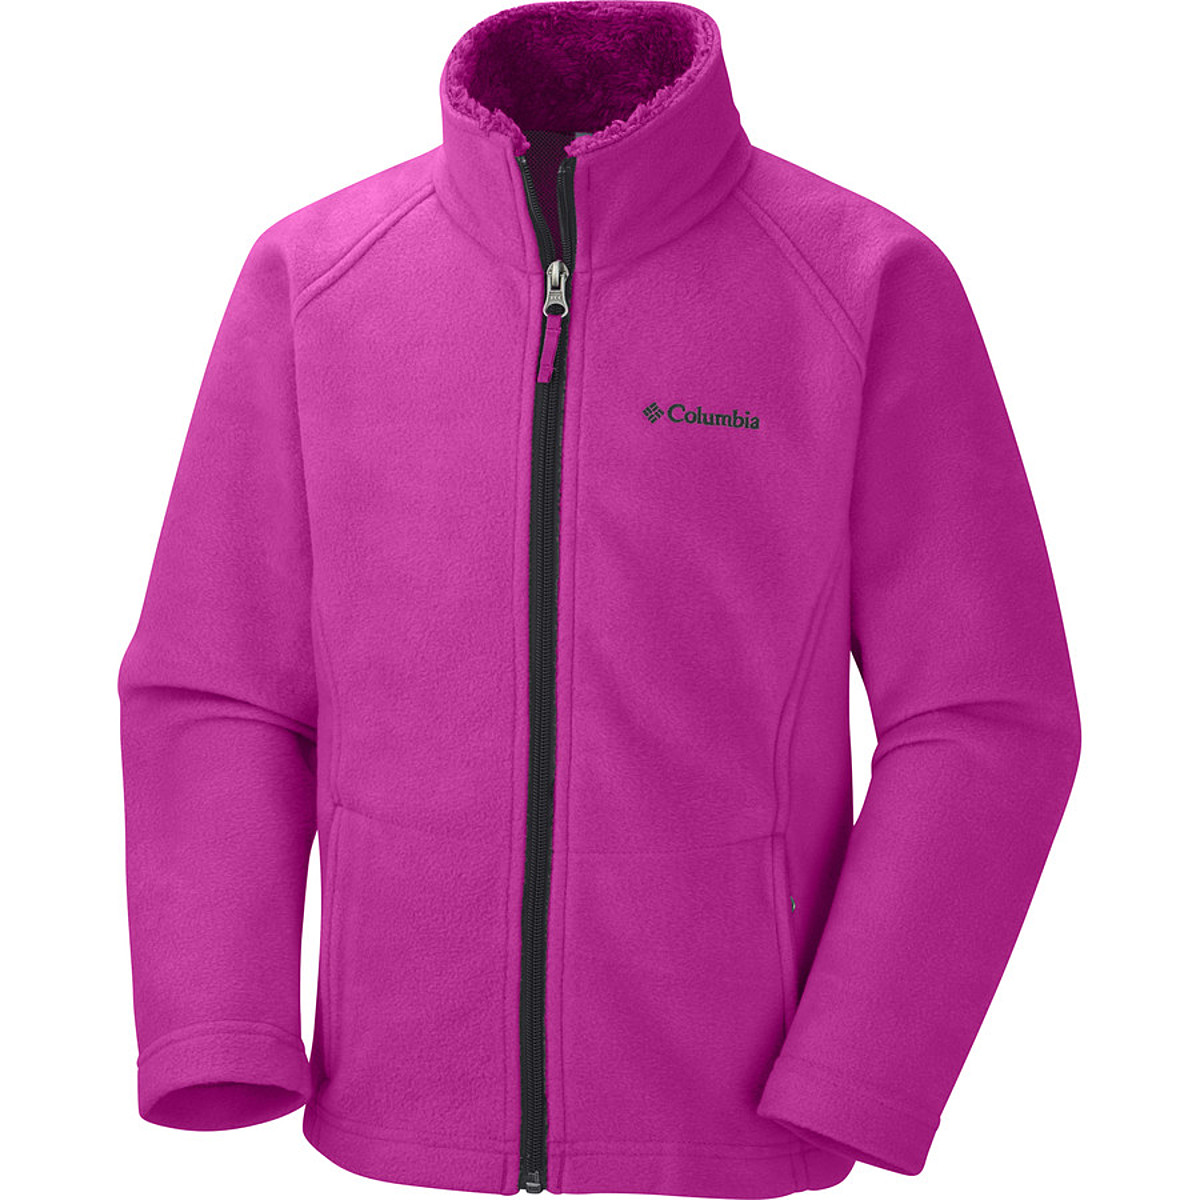 photo: Columbia Girls' Dotswarm II Fleece Full Zip Jacket fleece jacket